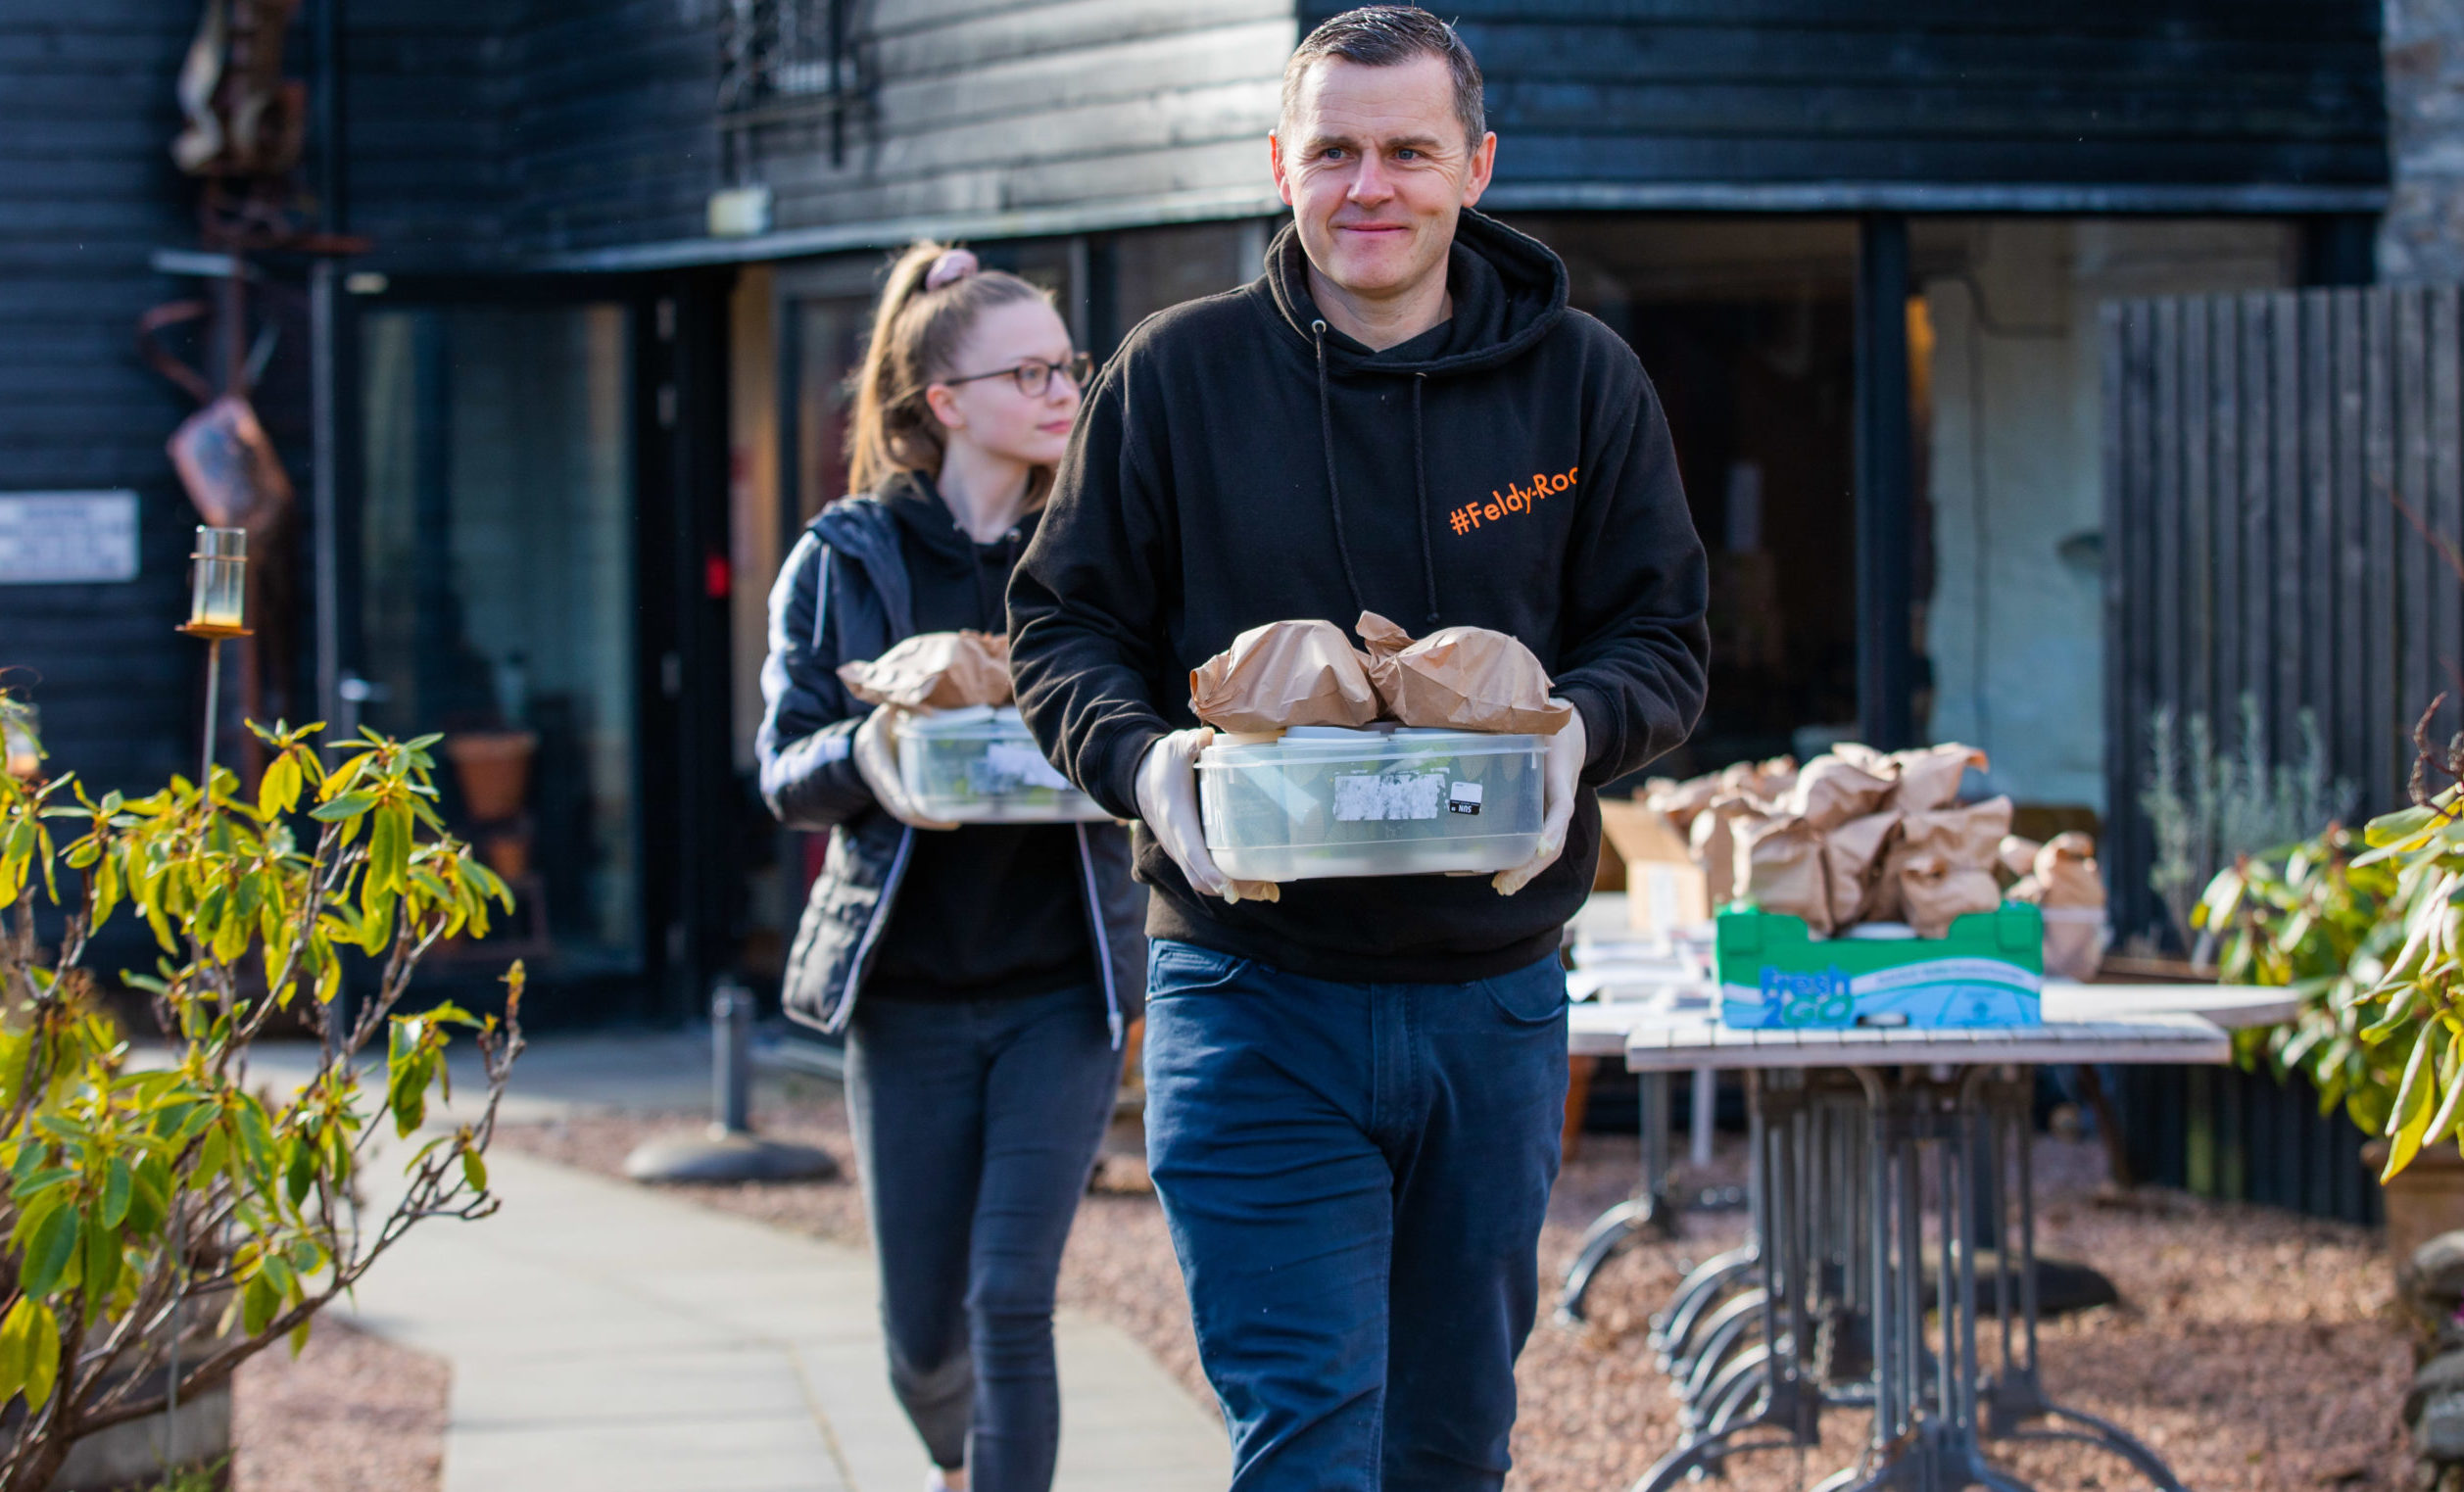 Hot food delivery 'Feldy-Roo' in association with Gavin Price. -- people arrive to collect food and papers to deliver for the morning run. Picture shows Ross Menzies and daughter Sasha Menzies. Watermill Gallery, Mill Street, Aberfeldy.